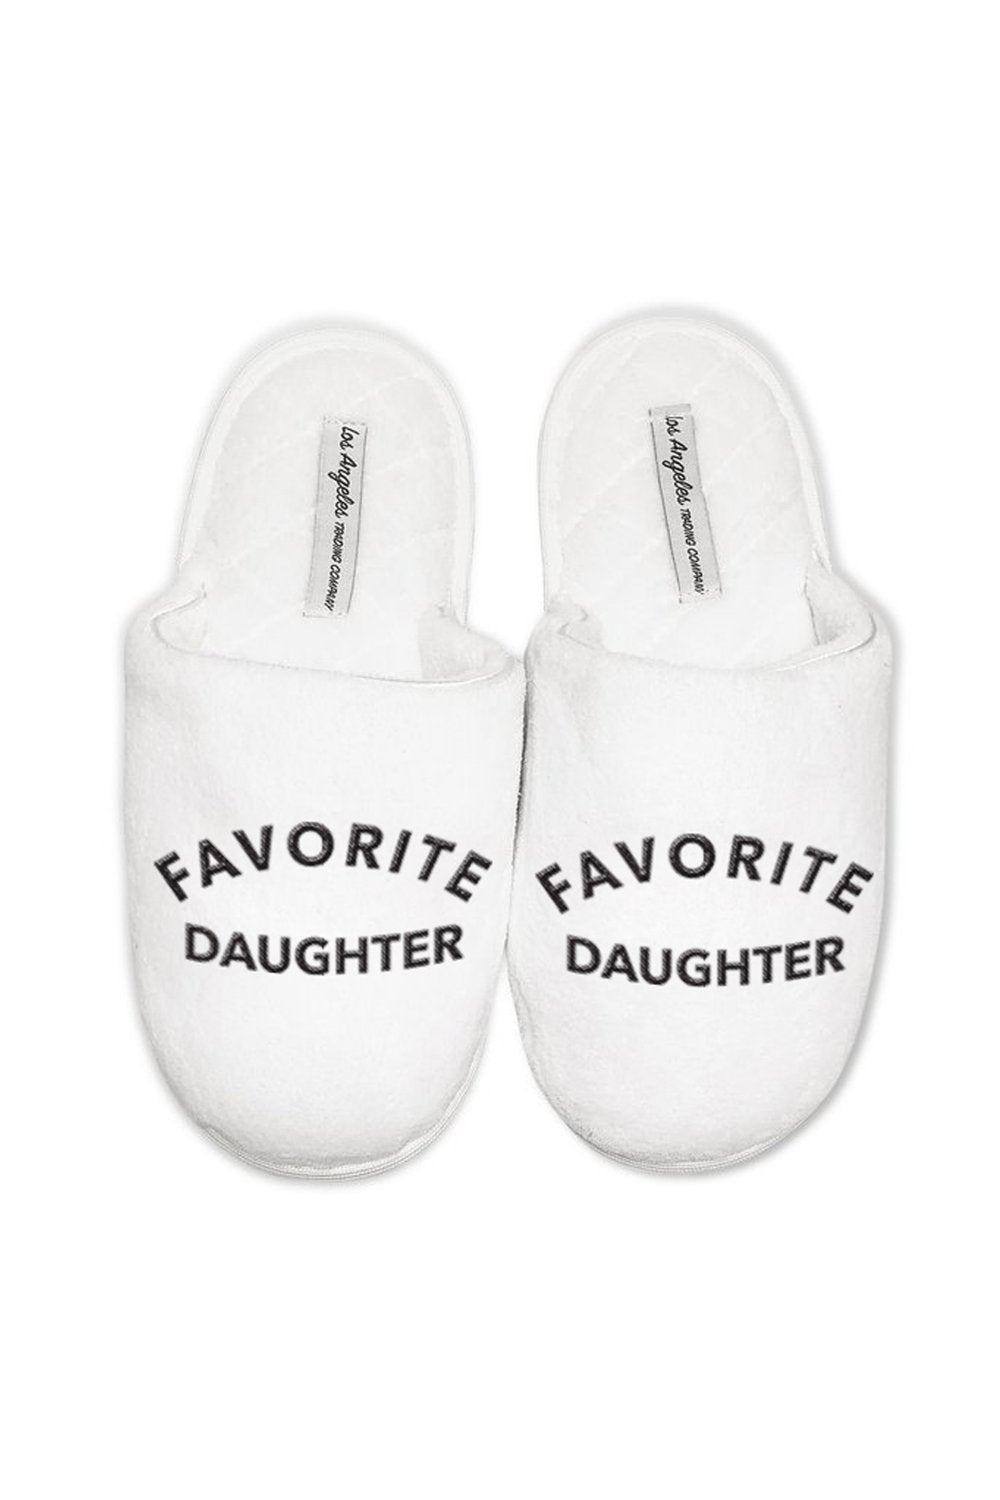 LA Trading Co White Plush Slippers Favorite Daughter